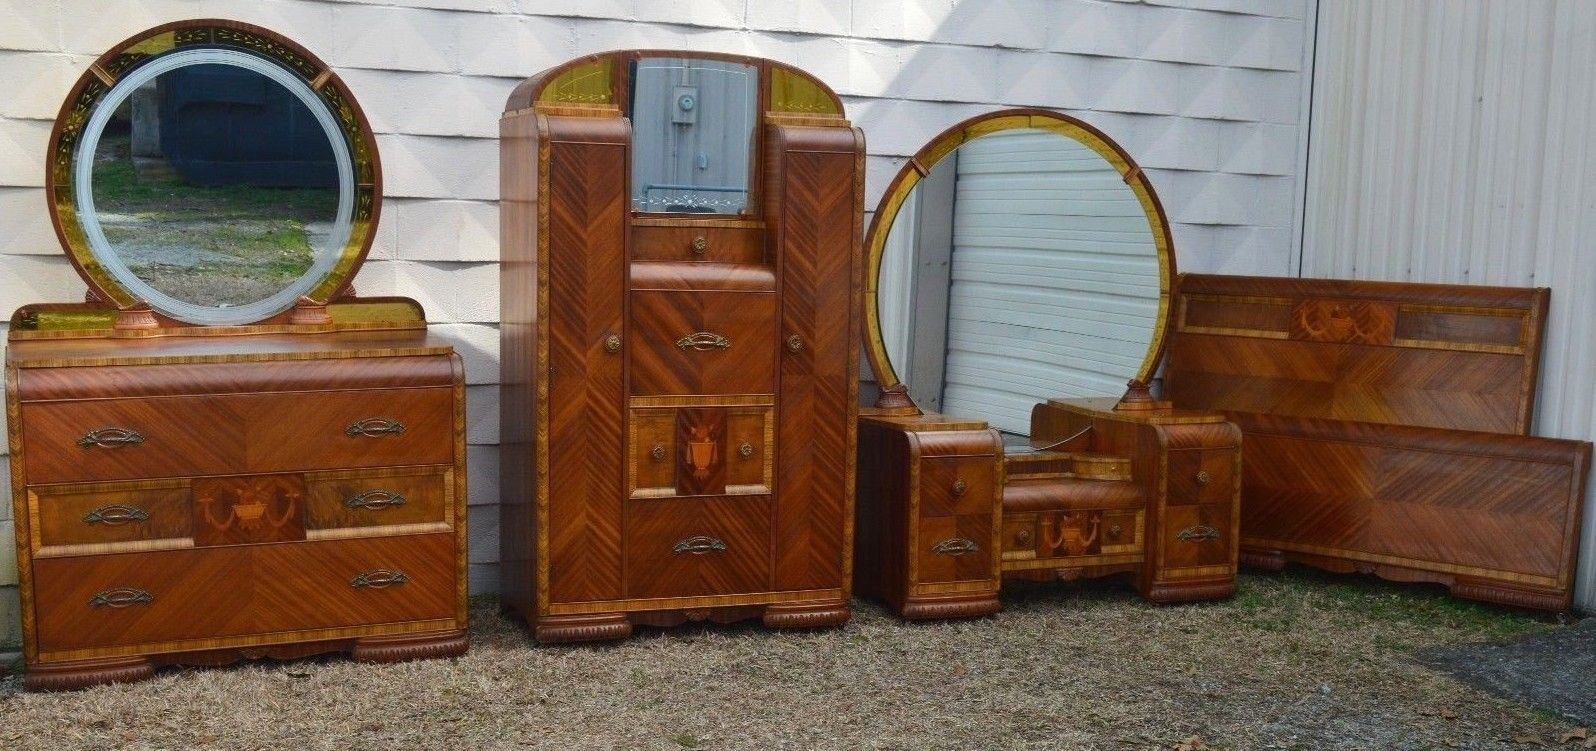 Art Deco Waterfall Furniture | Antique Art Deco Waterfall ...